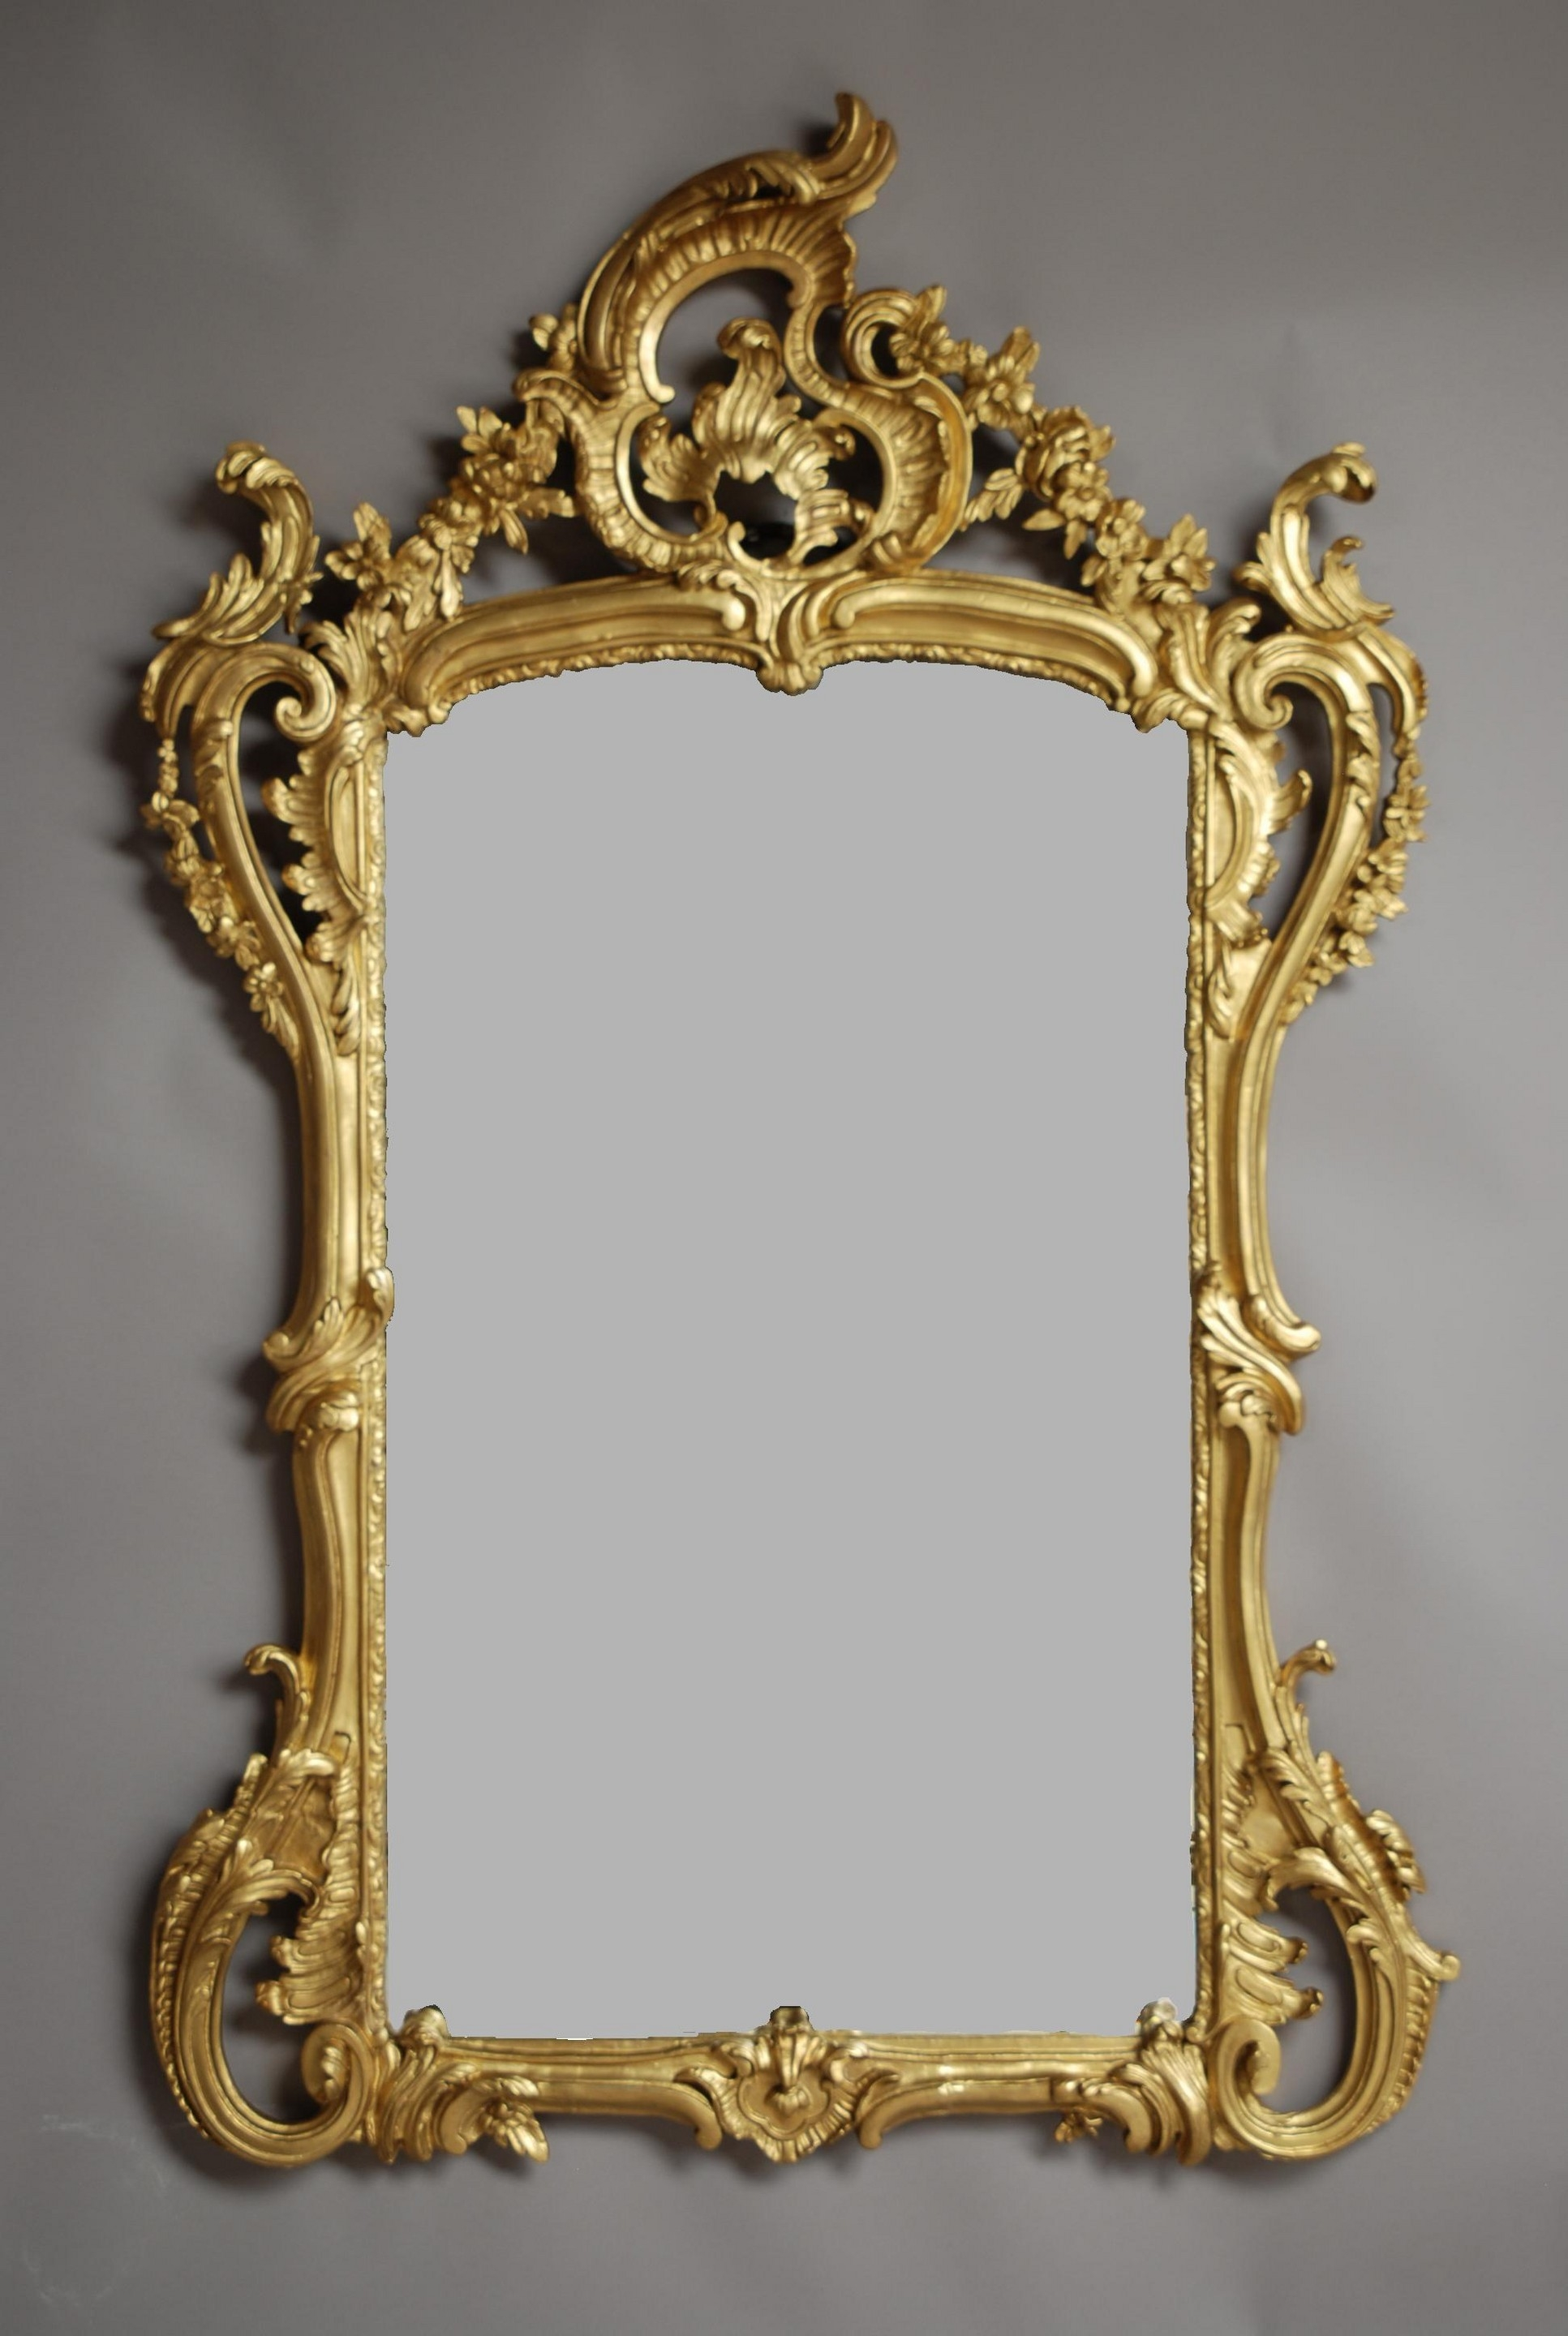 19th Century French Mirror In The Rococo Manner 1880 England In French Mirror (Image 1 of 15)